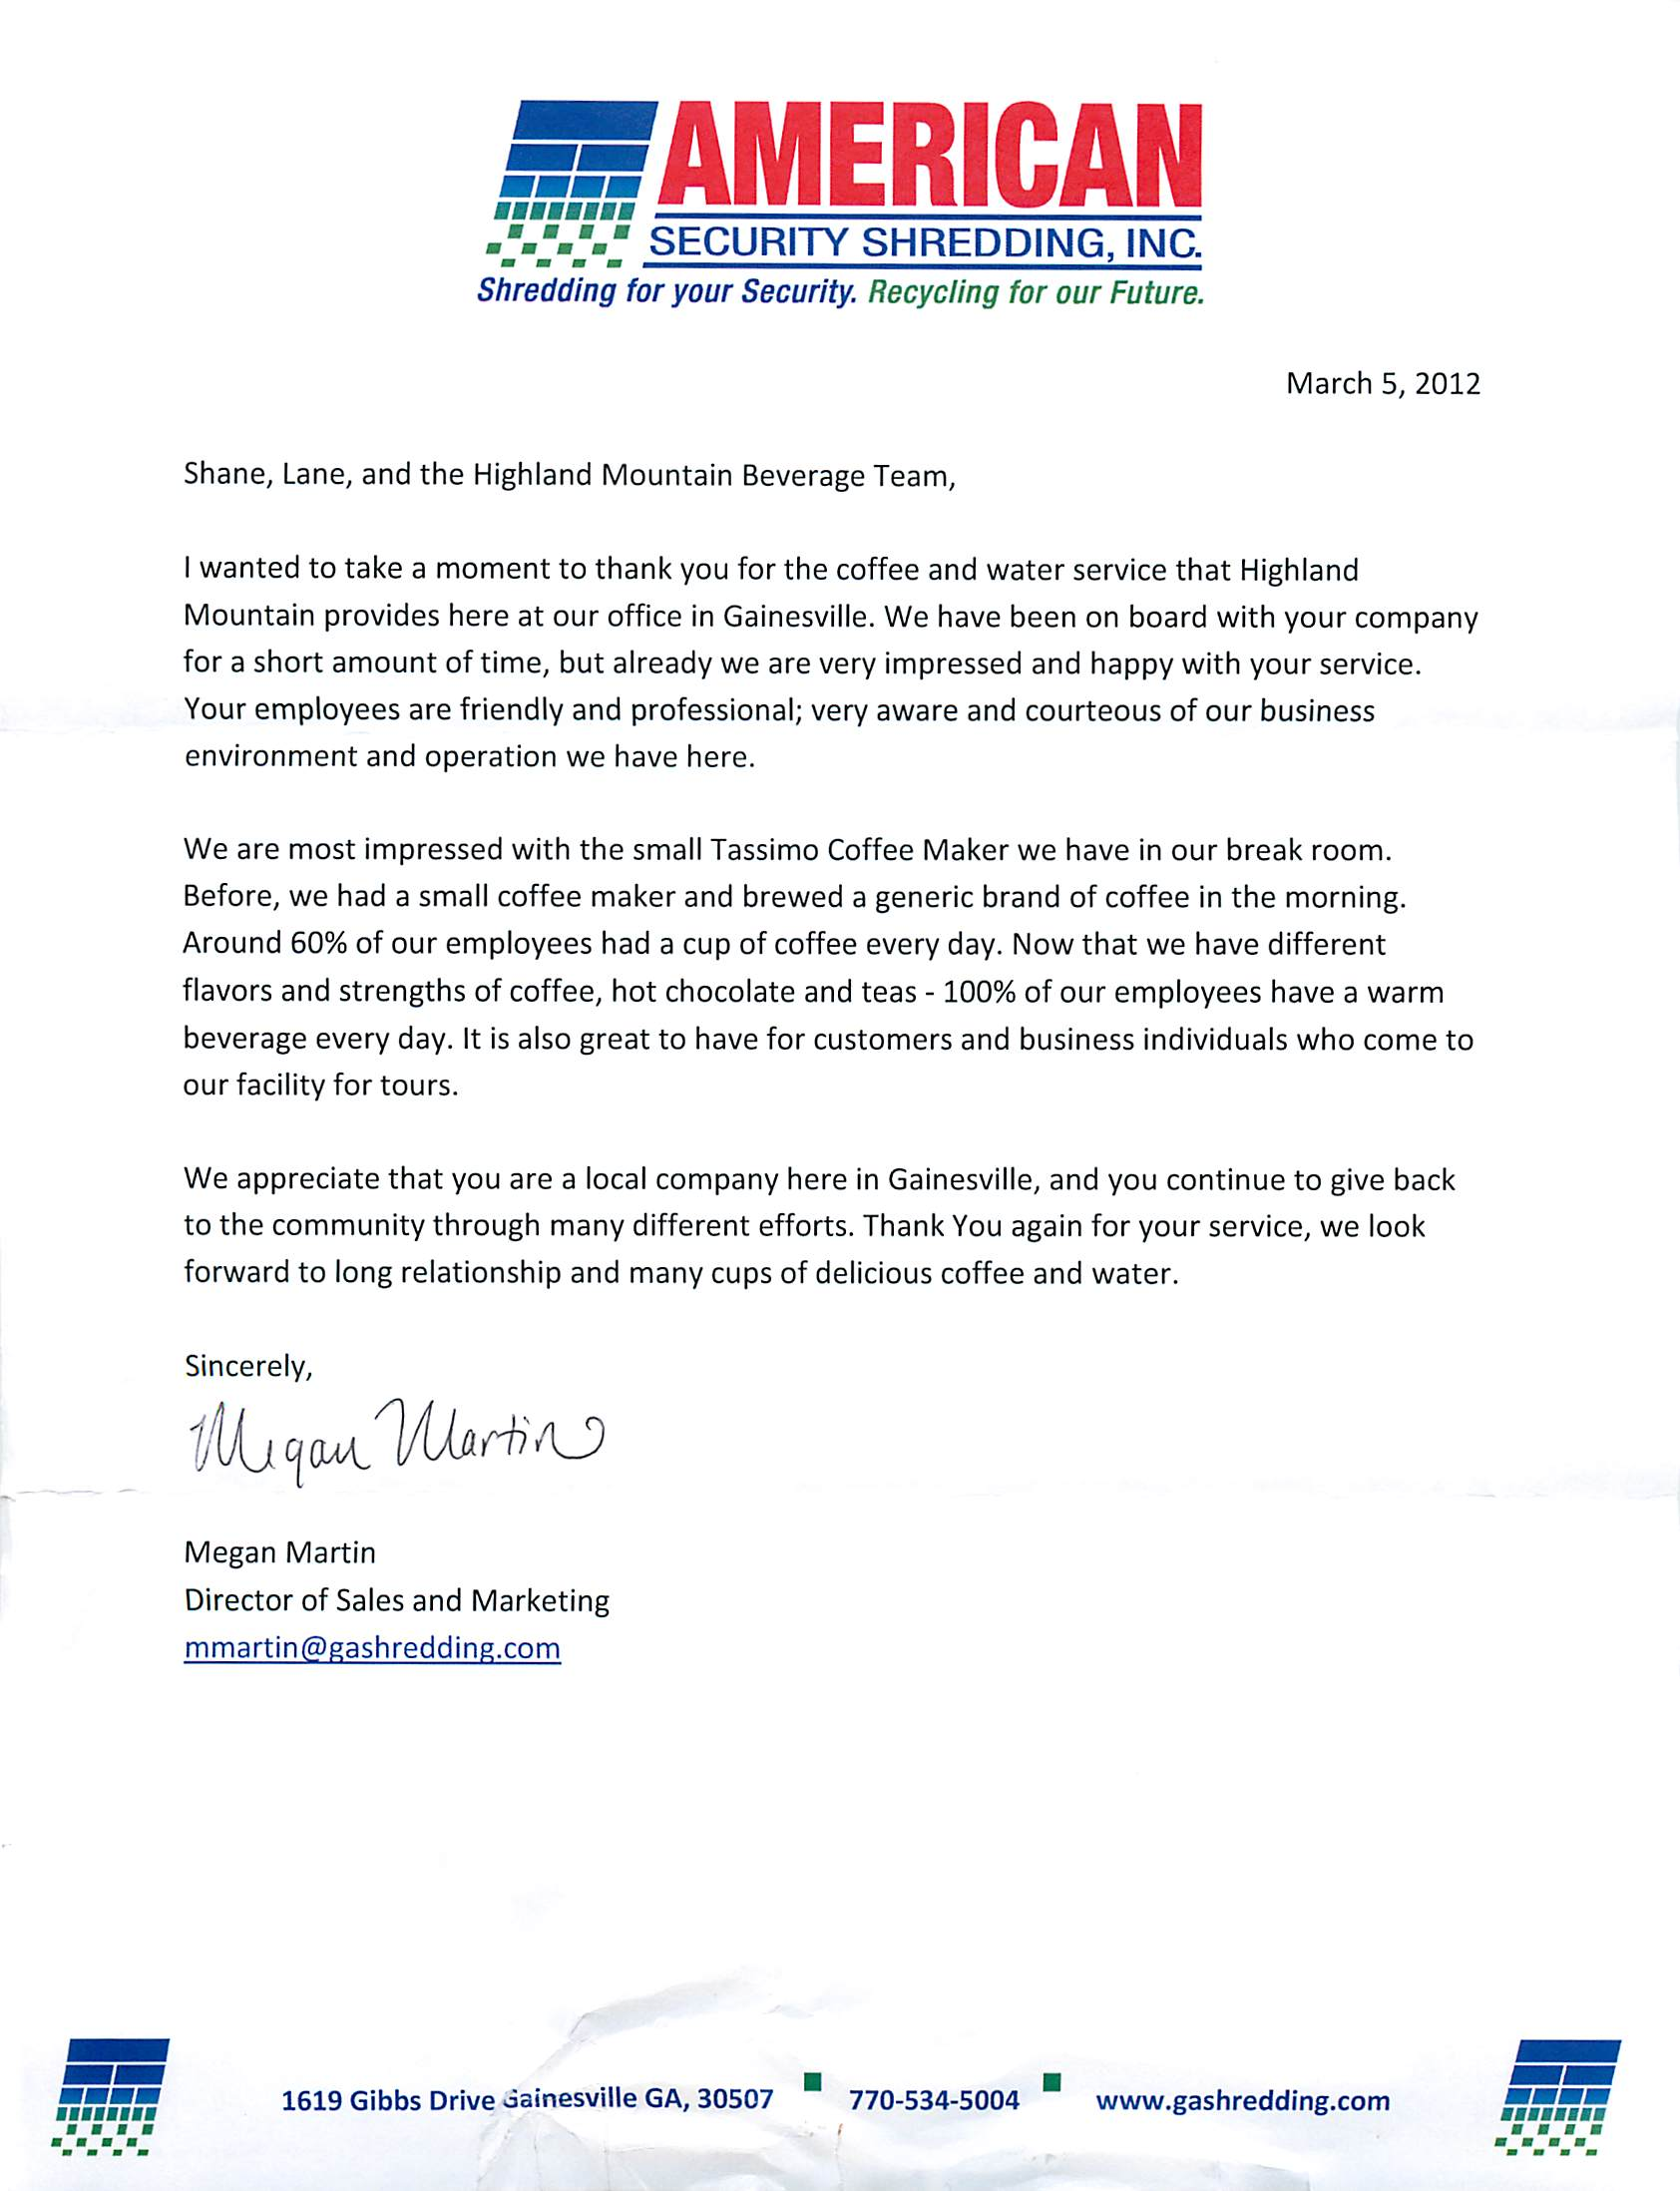 Customer Appreciation Letter  Highland Mountain Water